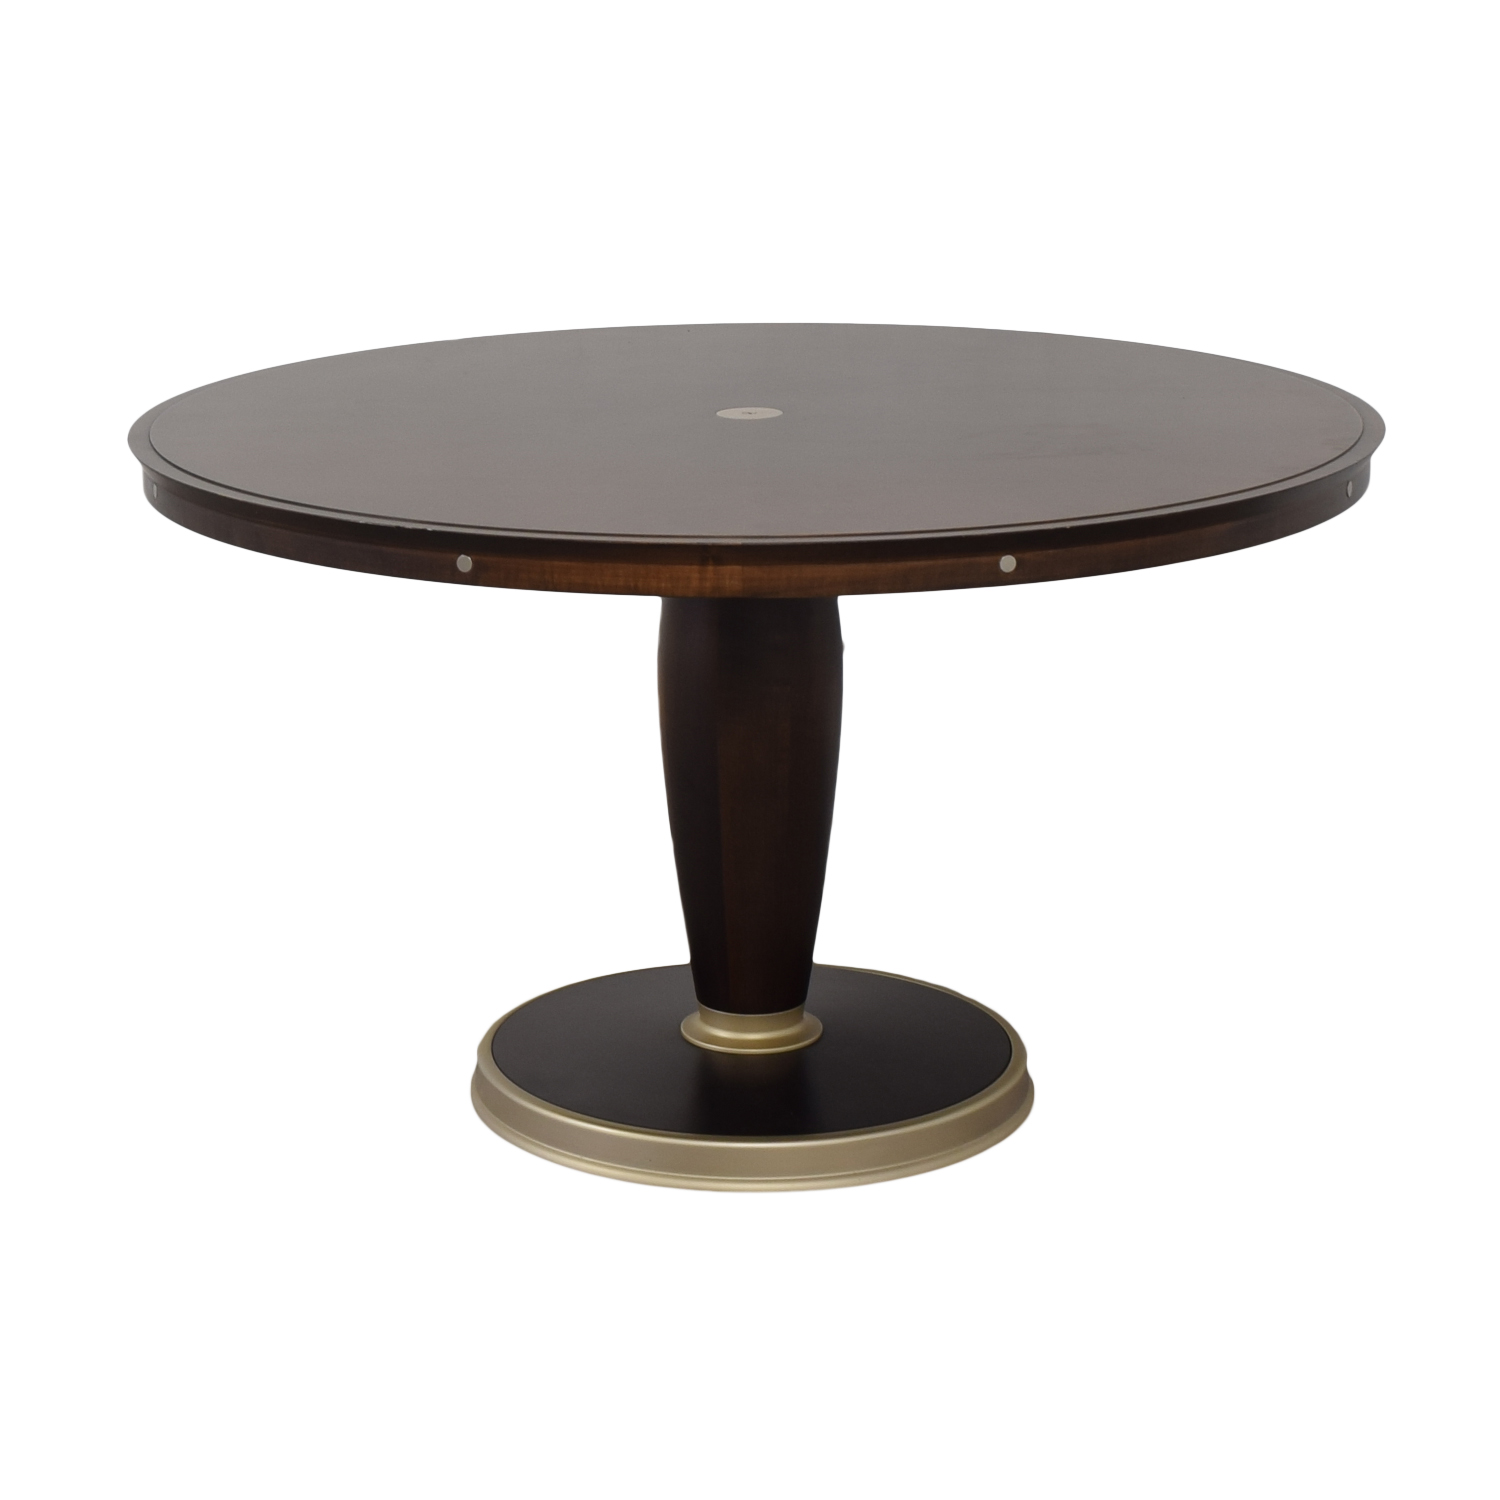 Giorgetti Round Dining Table sale